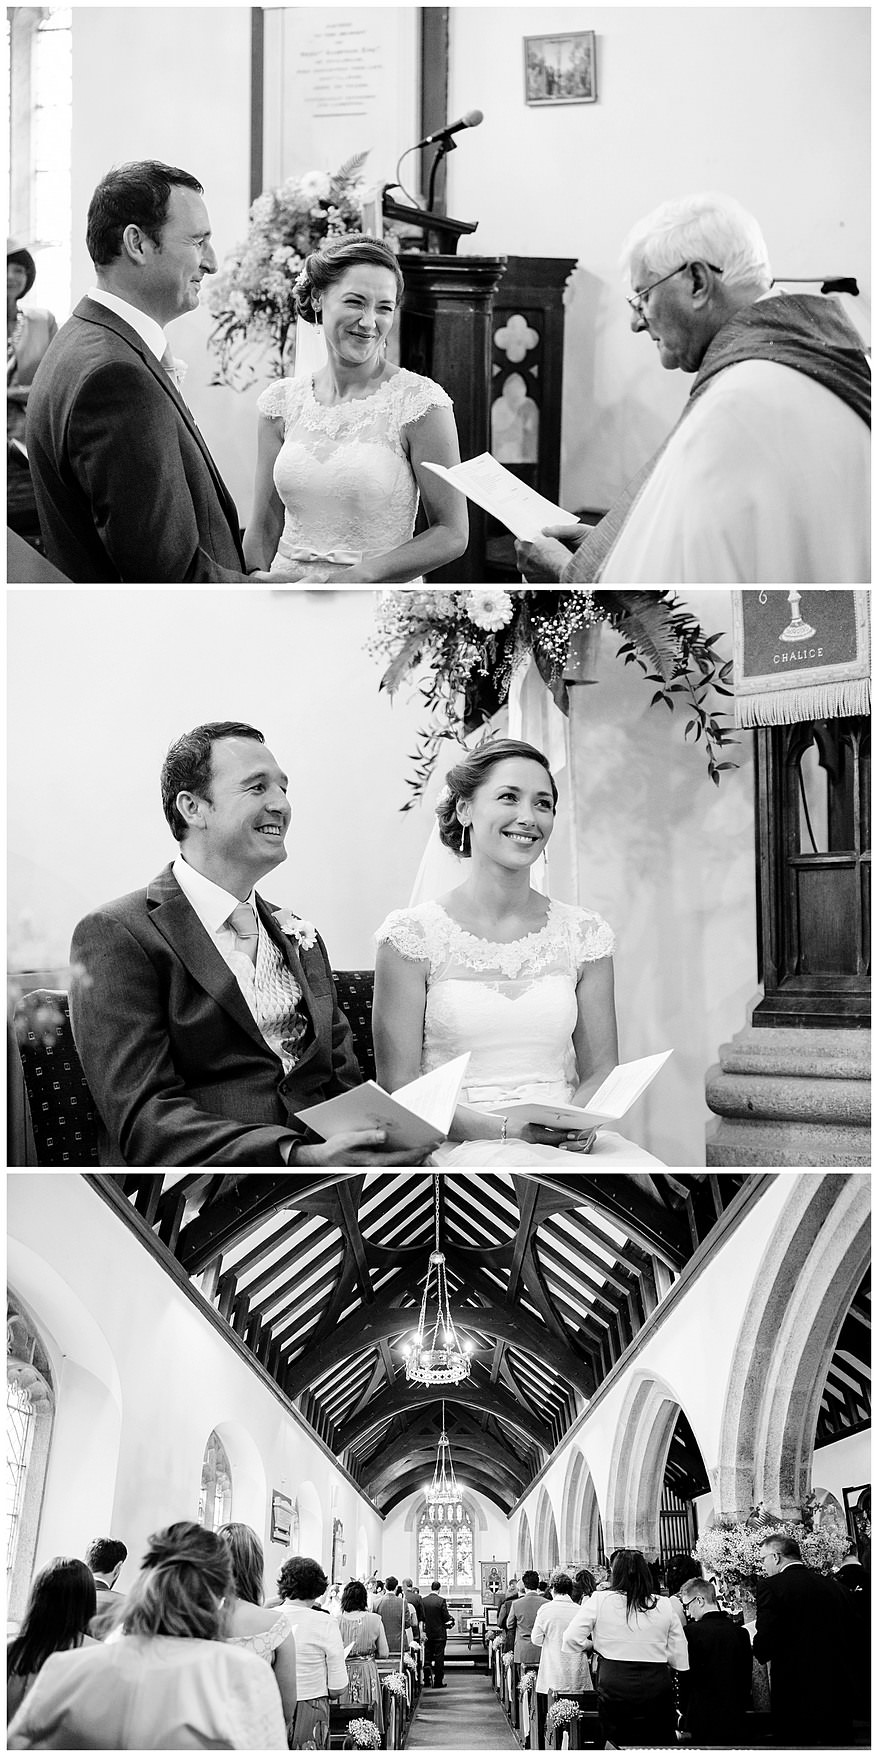 Wedding ceremony at Perranwell Church